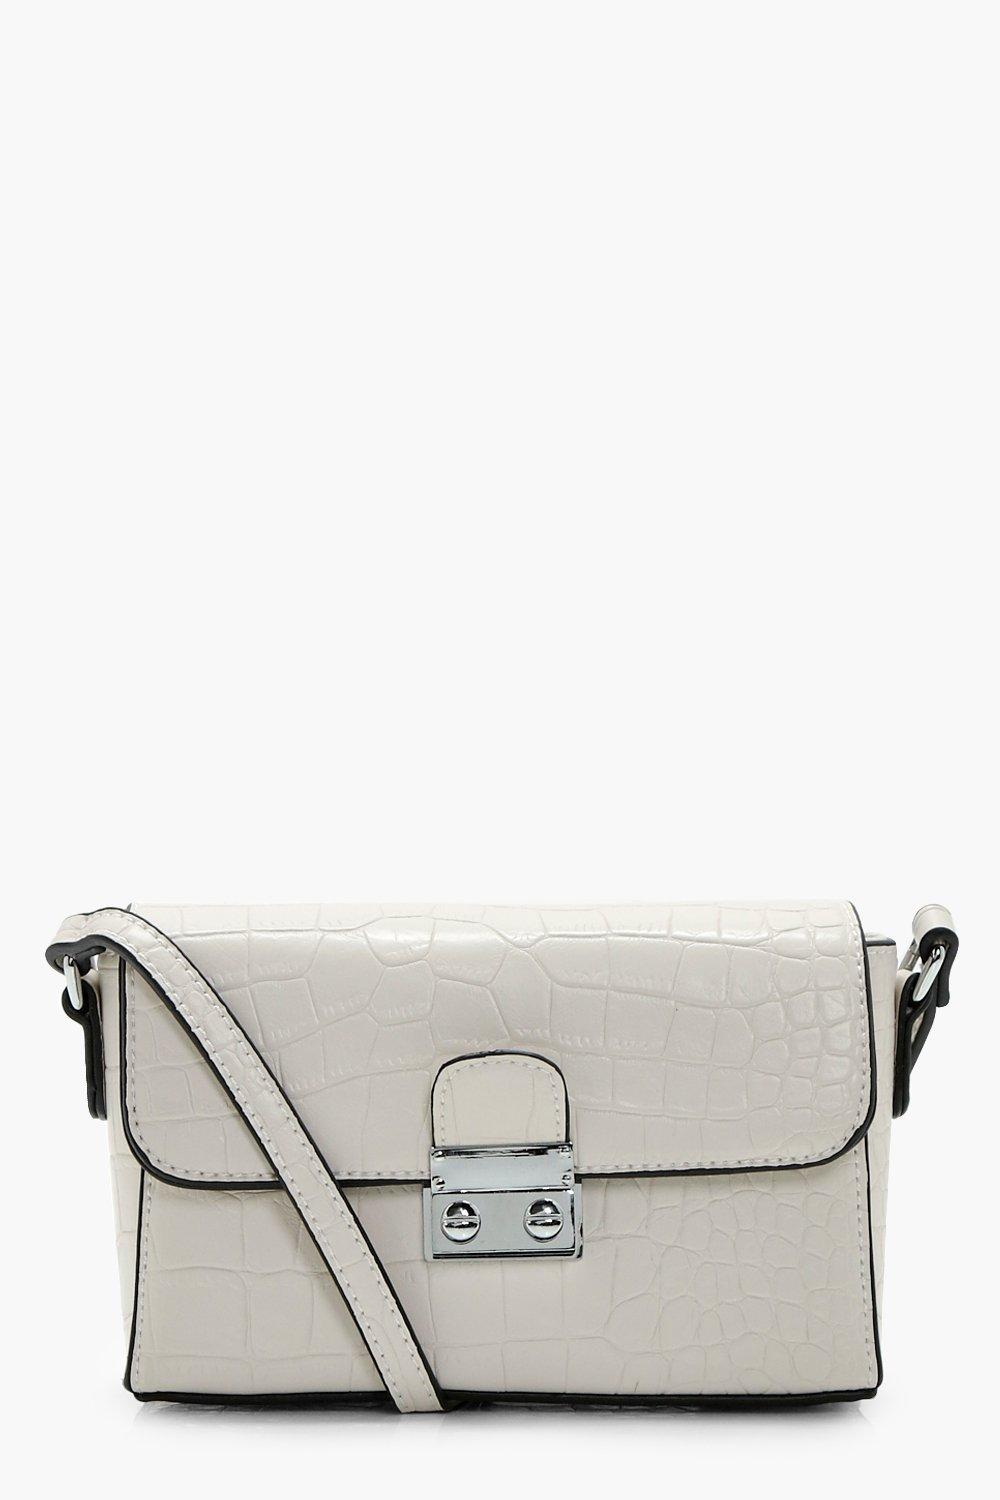 Croc & Lock Cross Body - beige - Chantelle Croc &